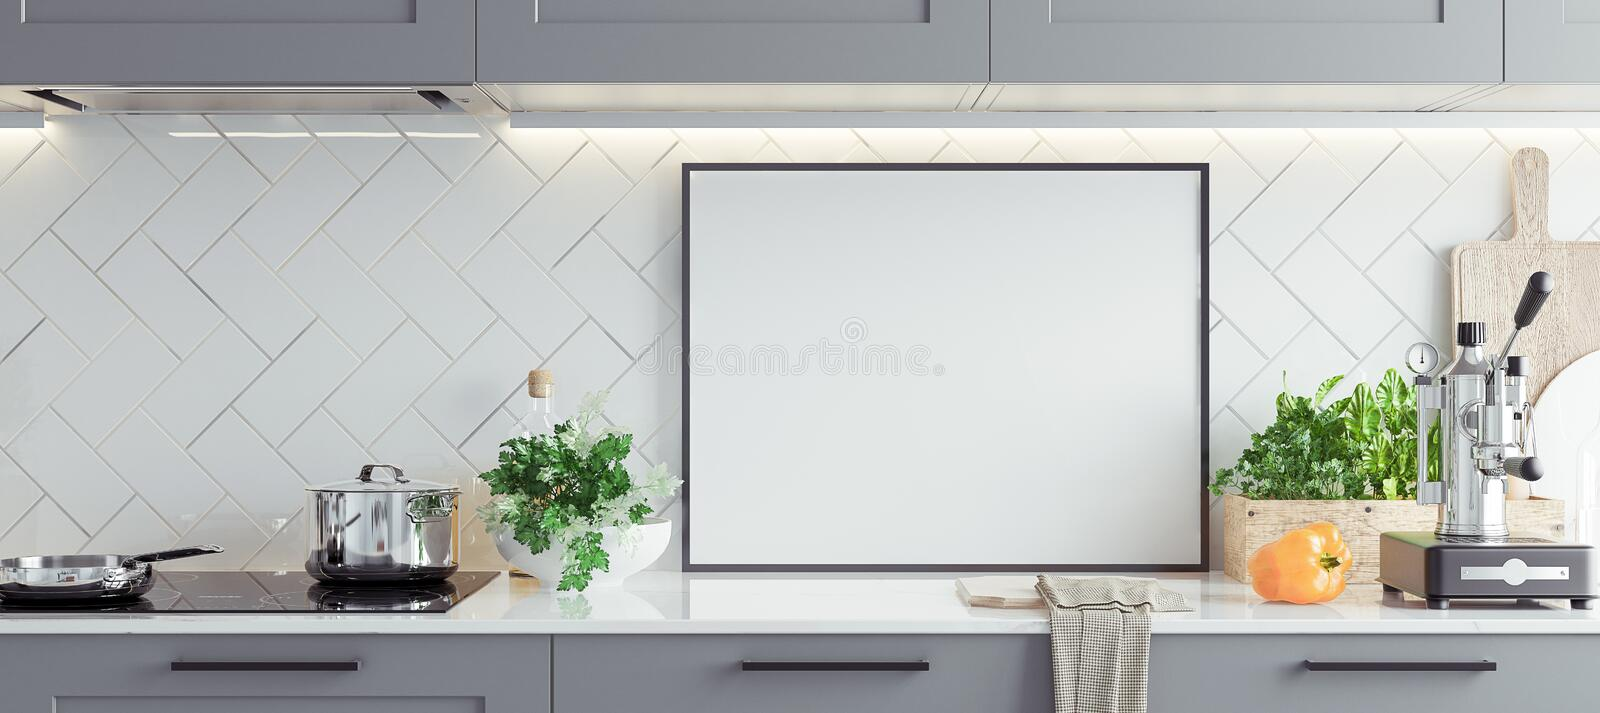 Mock up poster frame in kitchen interior, Scandinavian style, panoramic background royalty free stock images